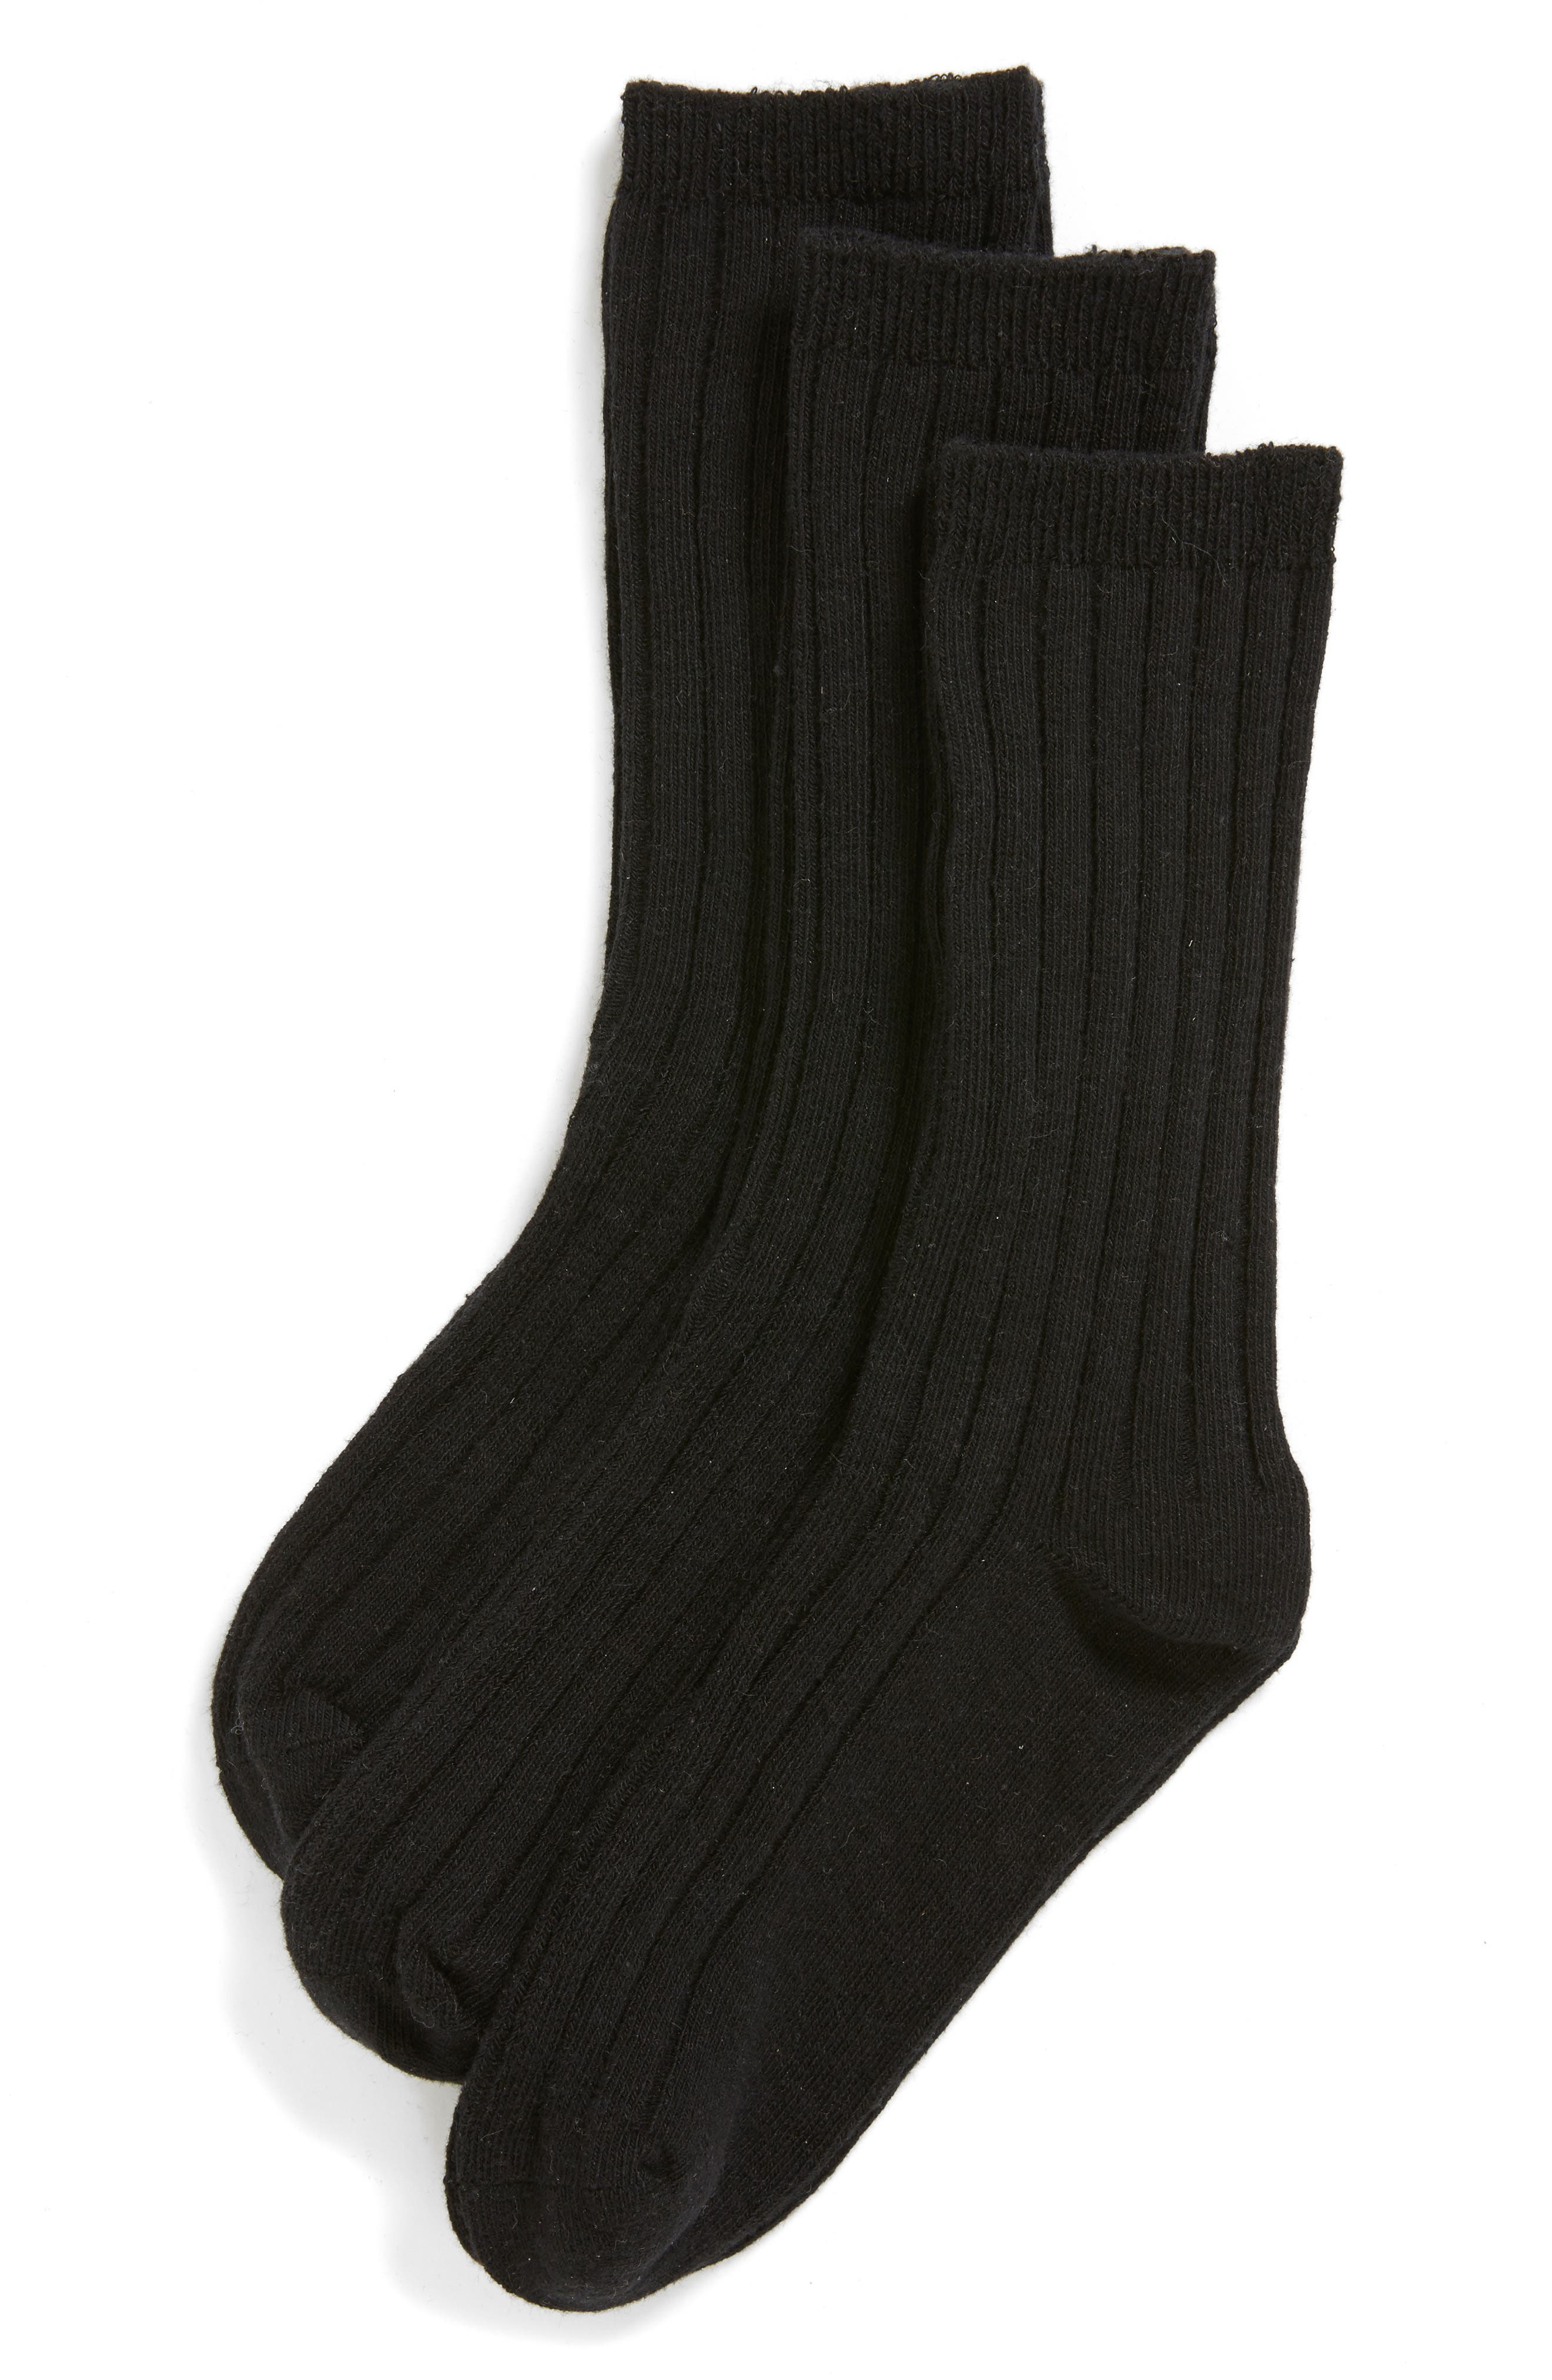 TUCKER + TATE 3-Pack Dress Socks, Main, color, BLACK